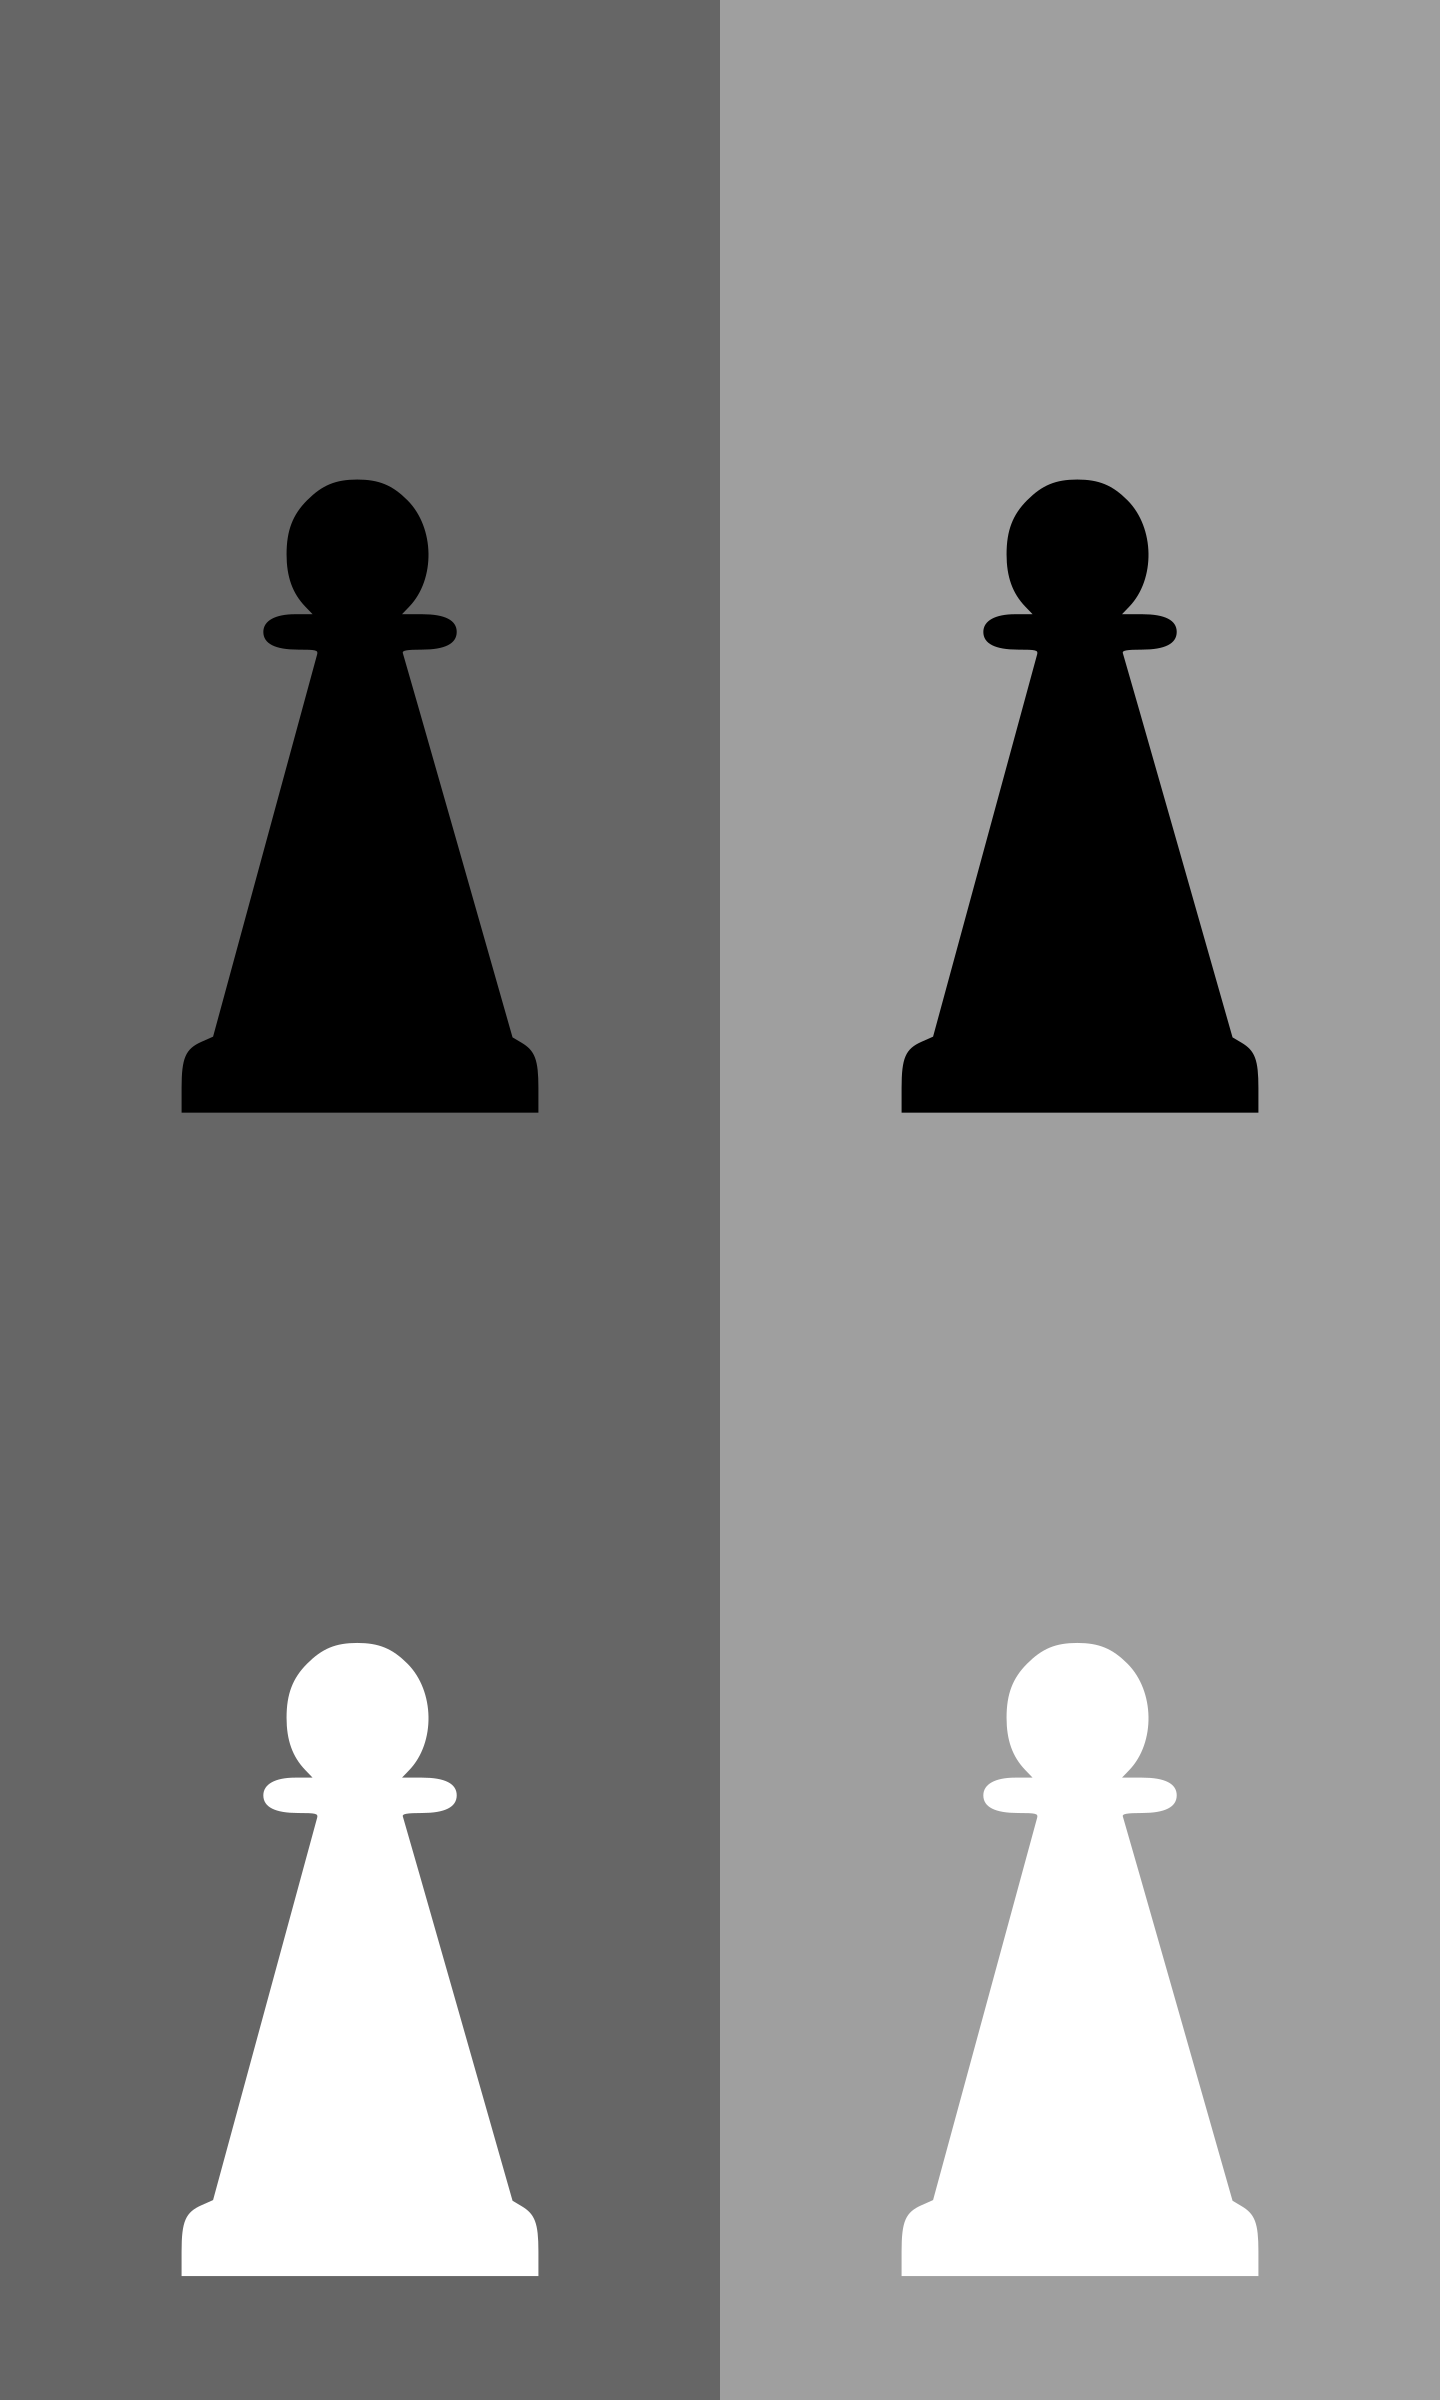 2D Chess set - Pawn by portablejim